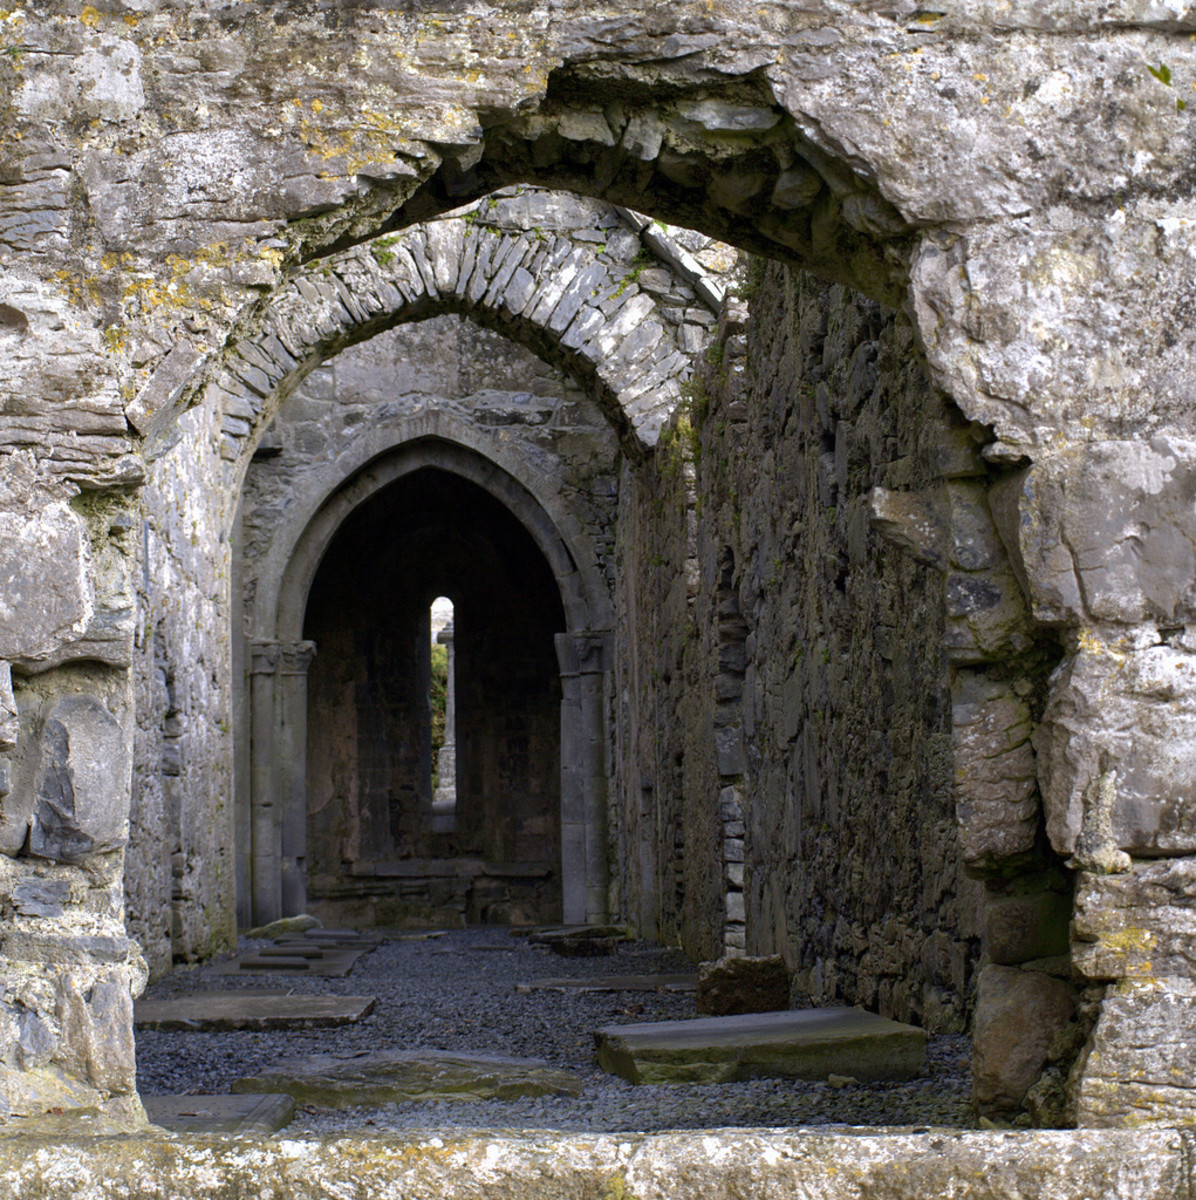 A view of Corcomroe Abbey, located in the Burren, Ireland